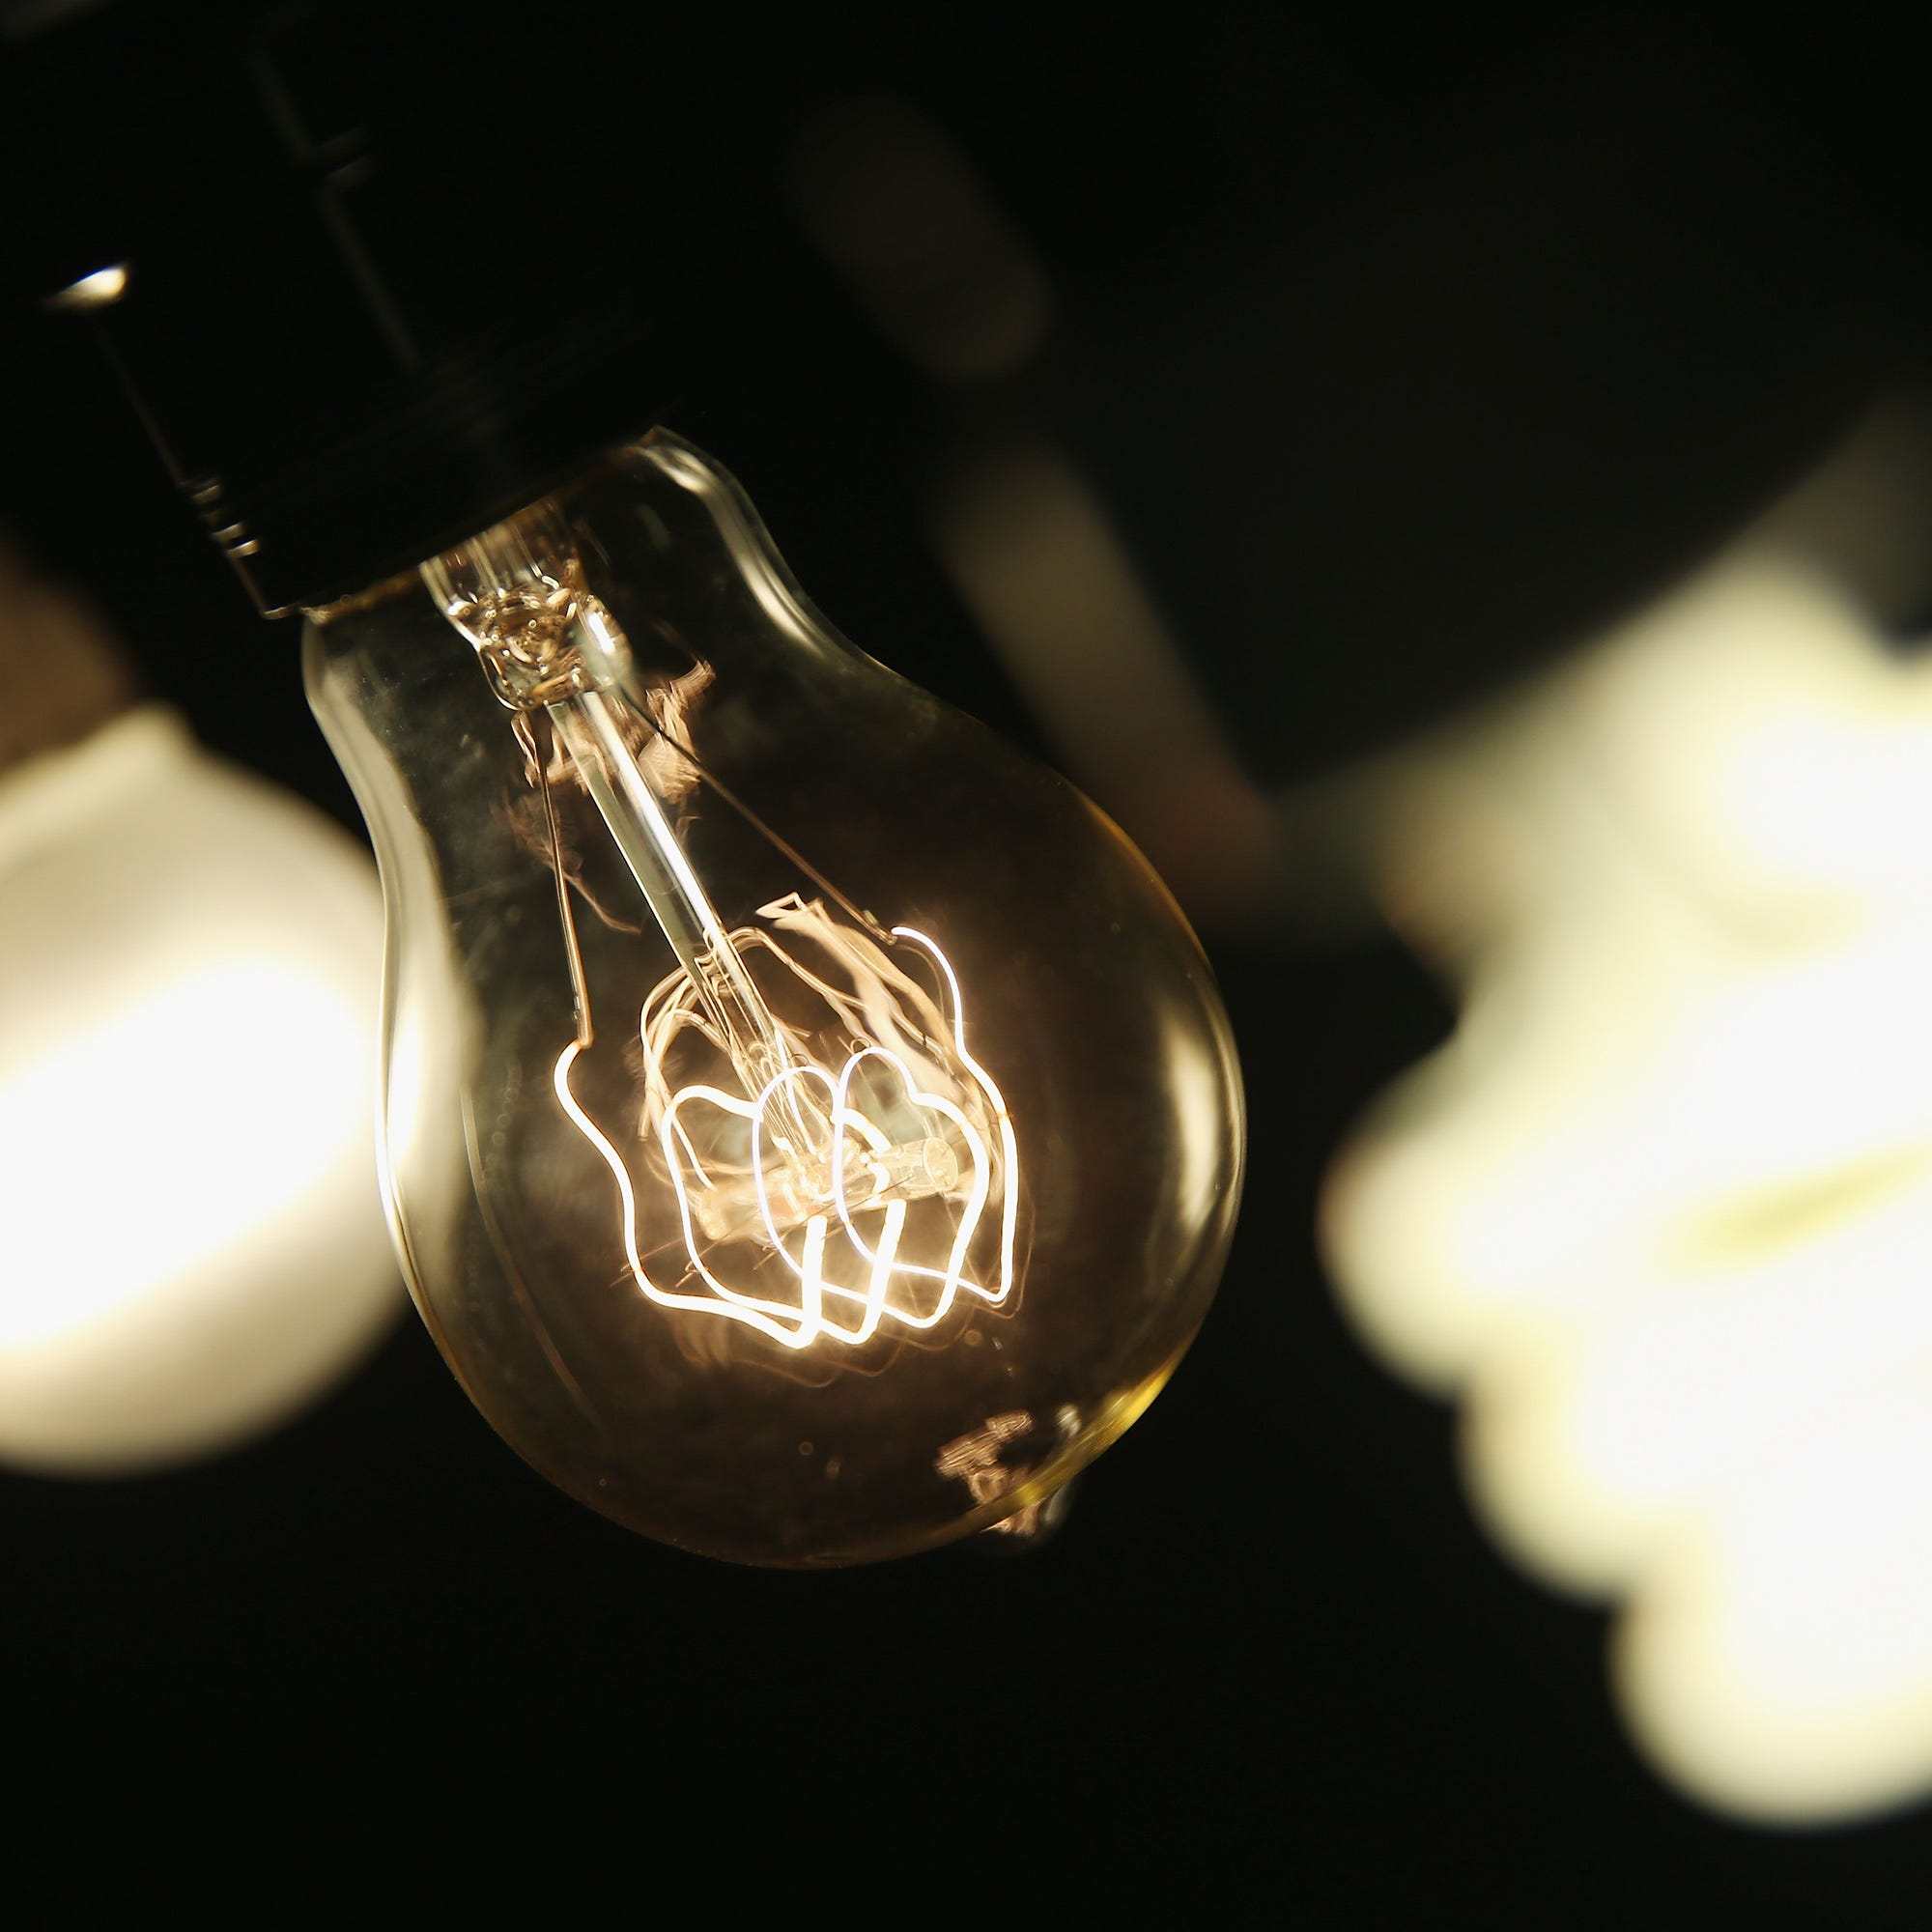 Why are we dragging light bulbs back into the dark ages?